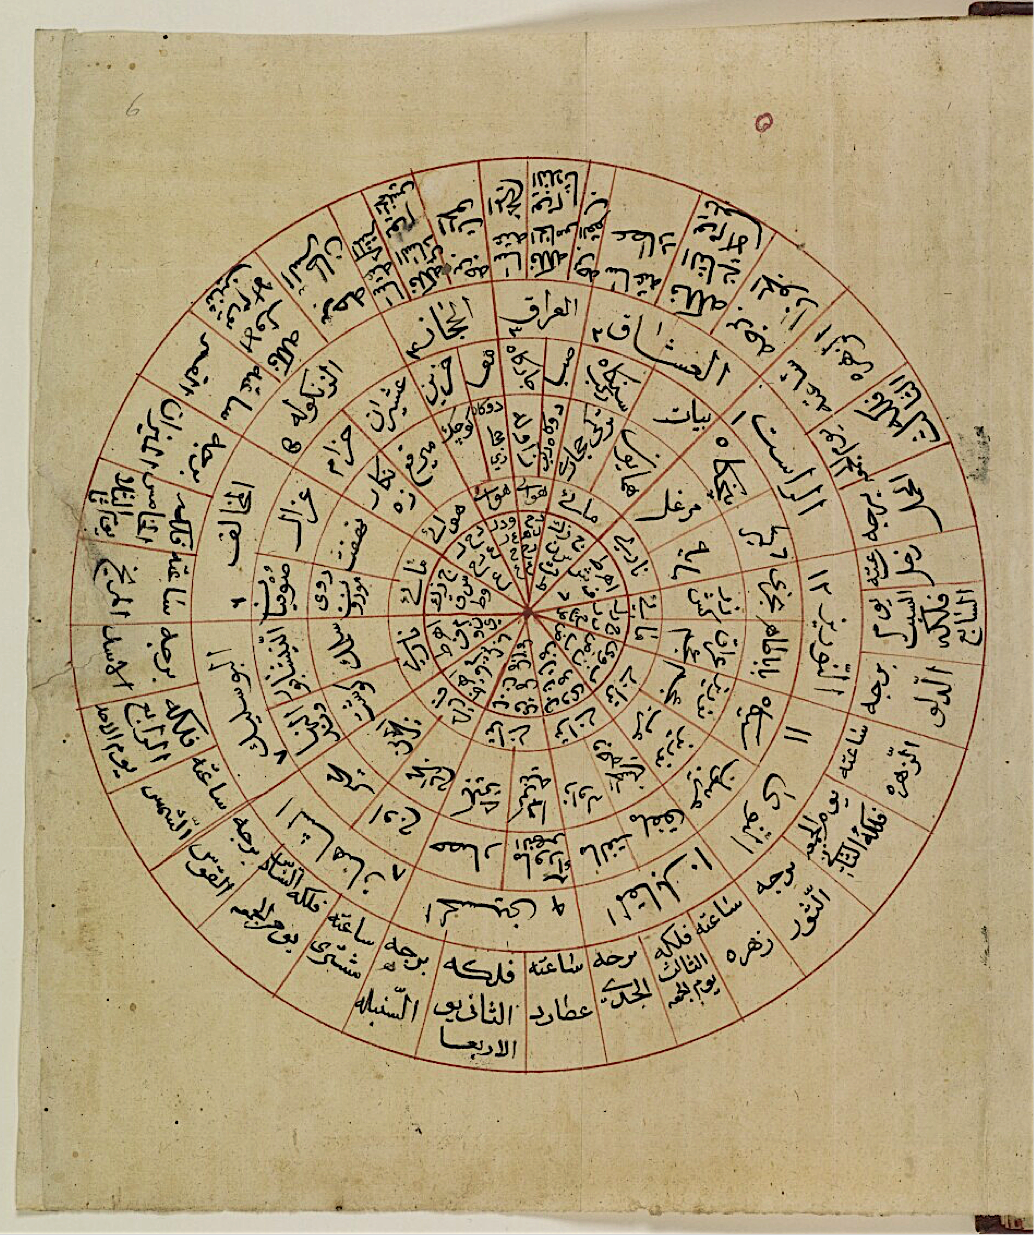 125 More Arabic Scientific Manuscripts in the Qatar Digital